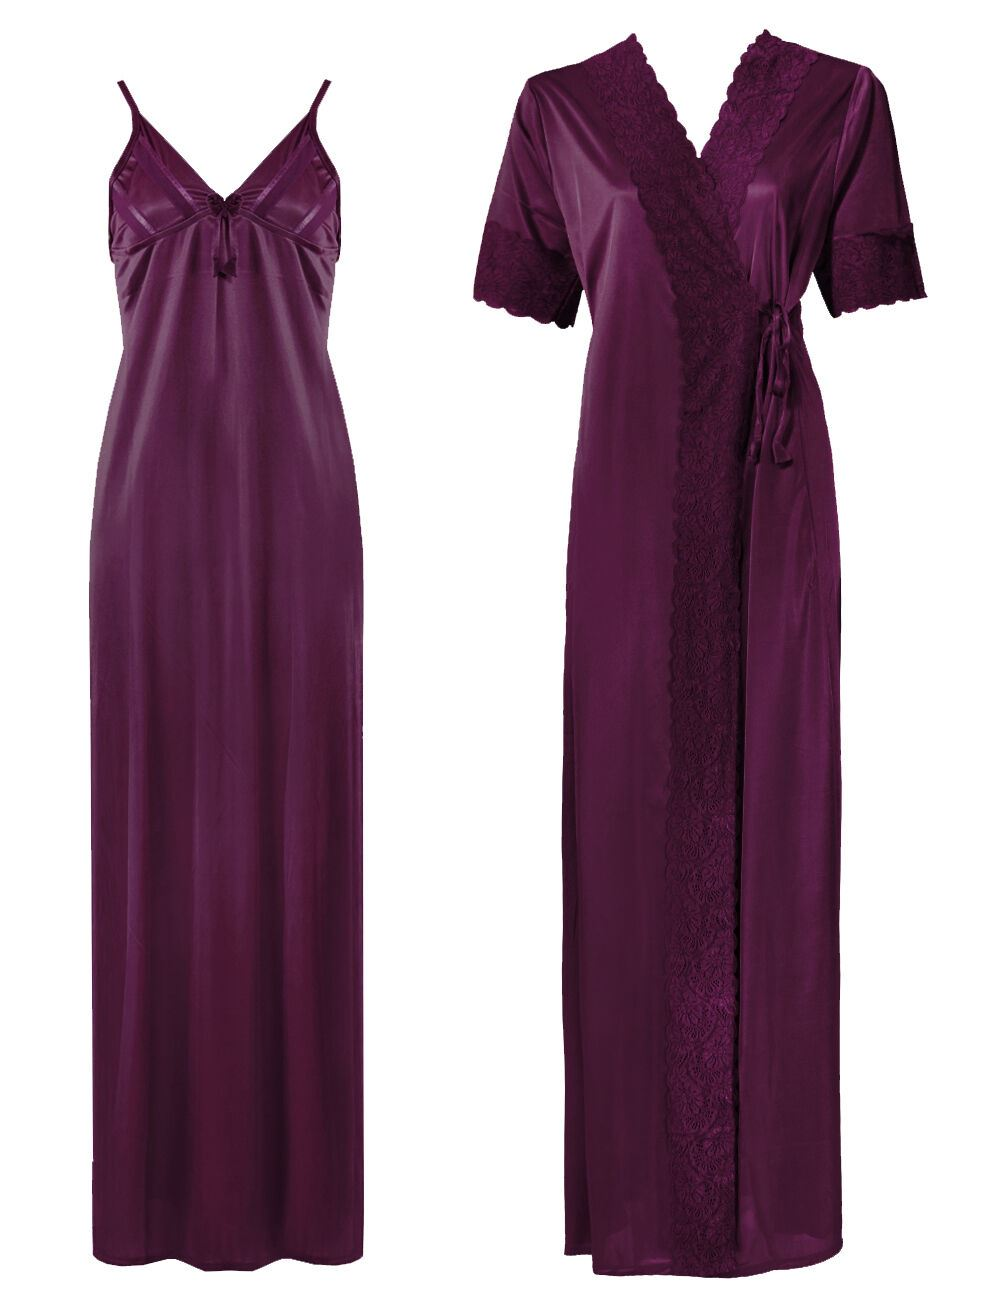 Satin Strappy Long Nighty With Dressing Gown / Robe [colour]- Hautie UK, #Nightfashion | #Underfashion